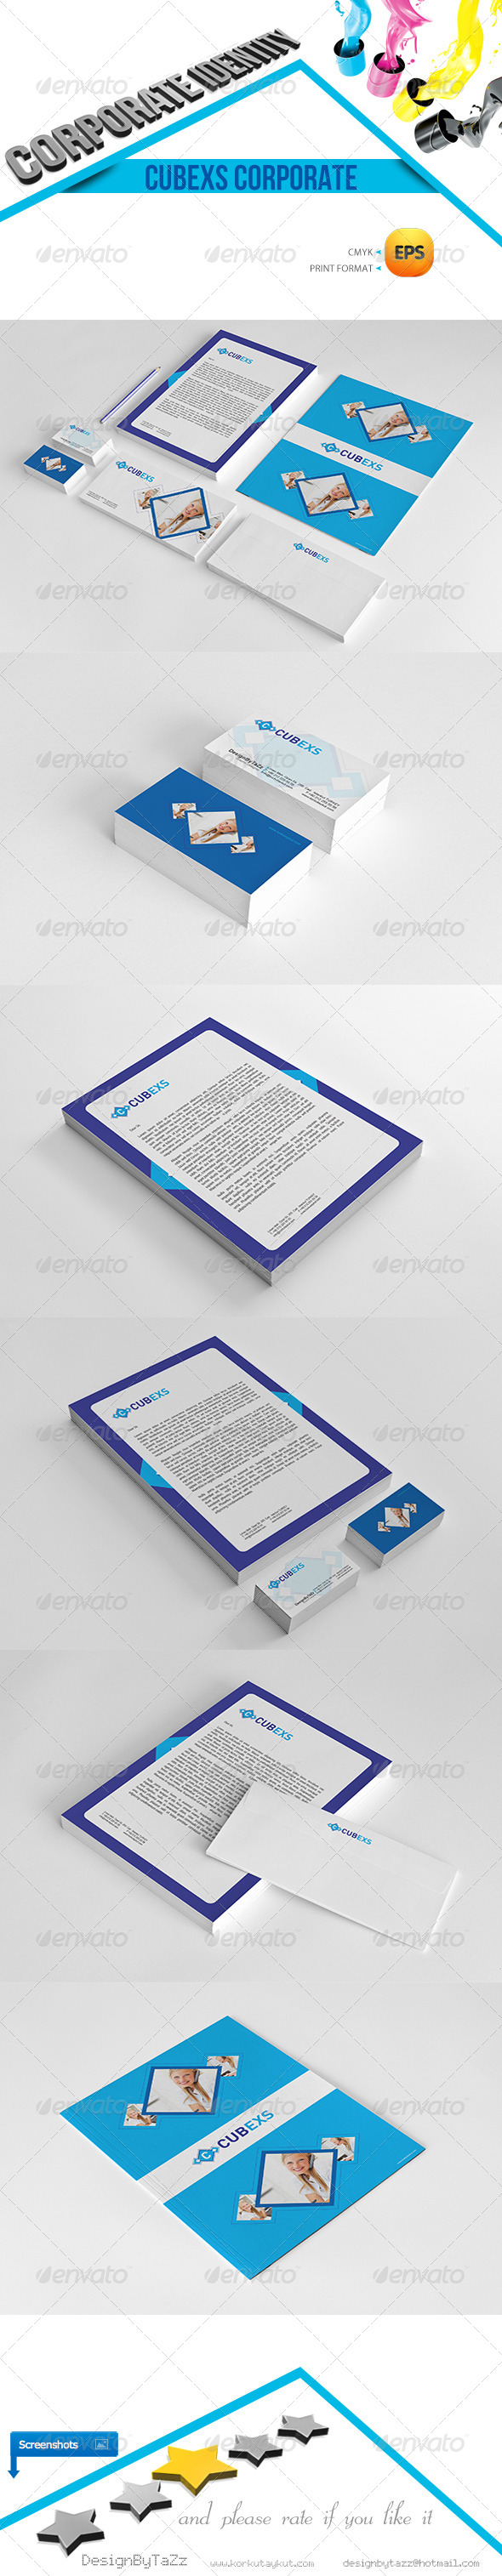 Cubexs Corporate Identity Package - Stationery Print Templates